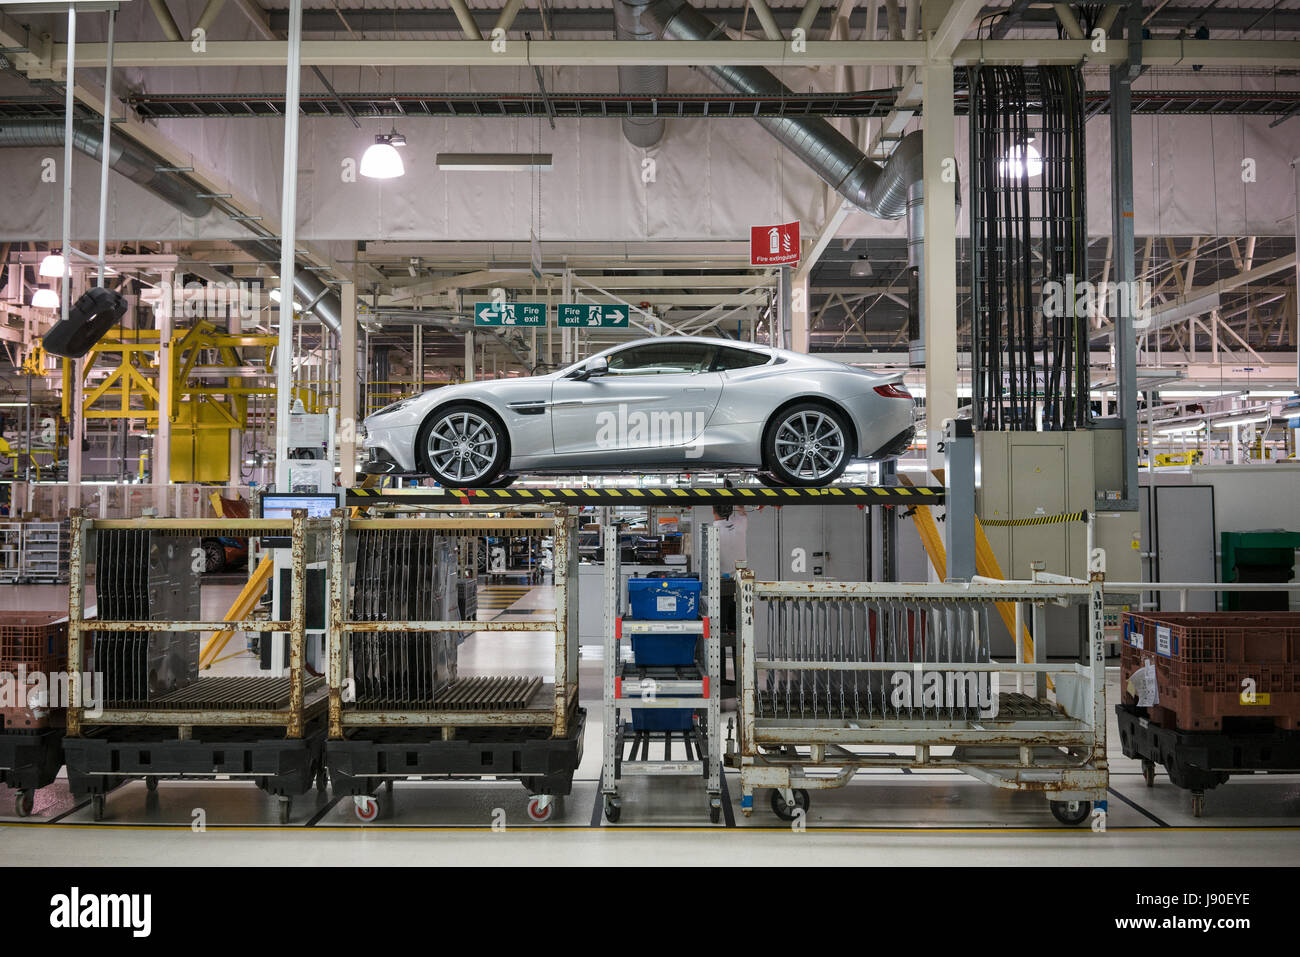 Gaydon, UK - 08/10/2016. An assembled Vanquish is raised up to have checks taken underneath the car. - Stock Image